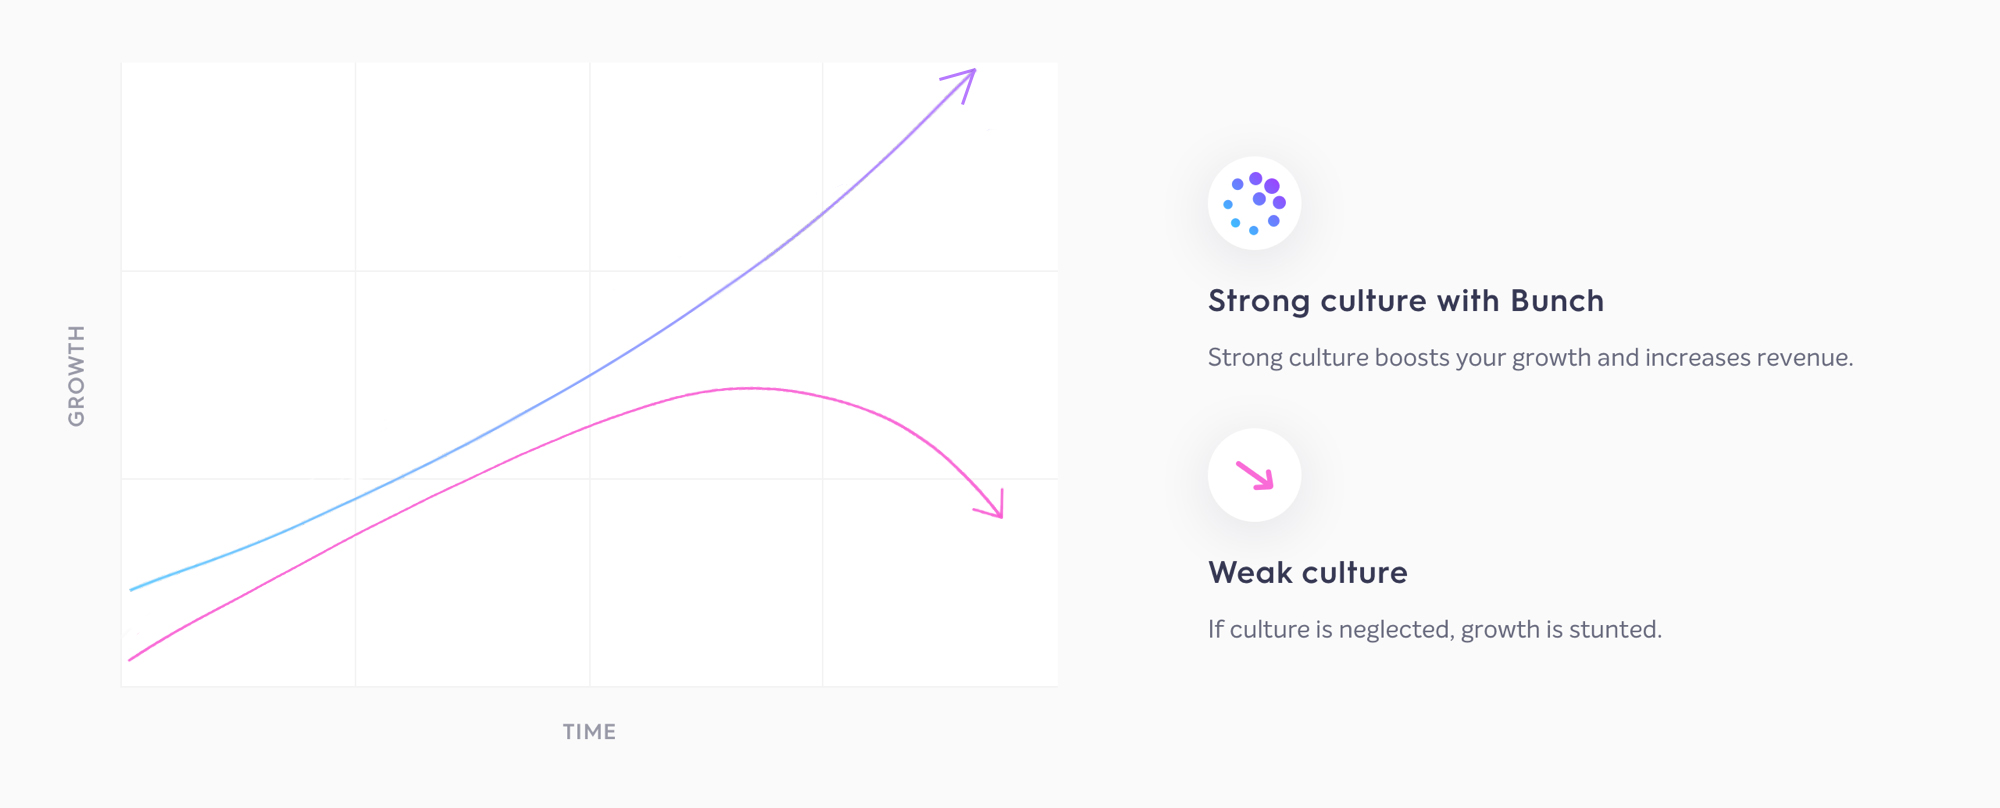 strong culture Bunch